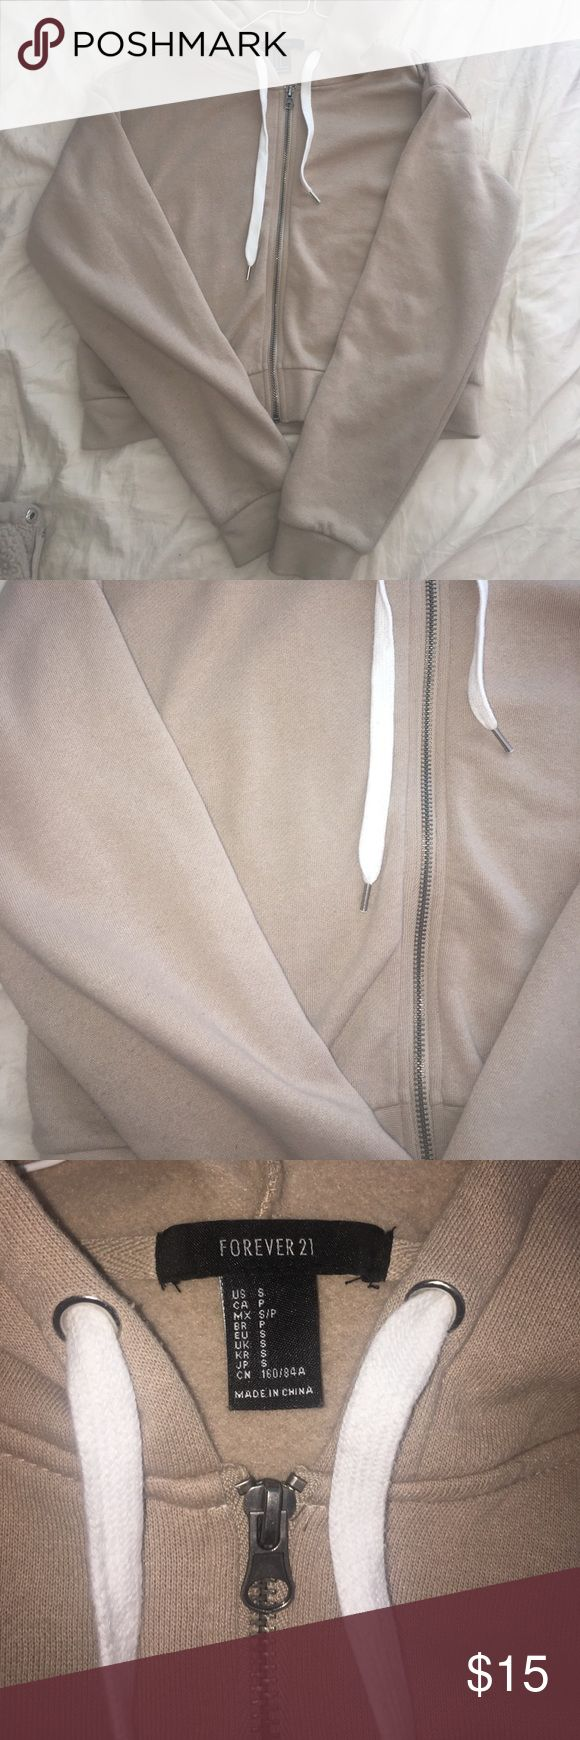 Beige Cropped Hoodie Cropped hoodie from forever 21. Worn couple times but in good condition. Super comfy. Size Woman's Small. Sight pilling under the sleeves (shown in last pic) but other than that in great condition Forever 21 Tops Sweatshirts & Hoodies